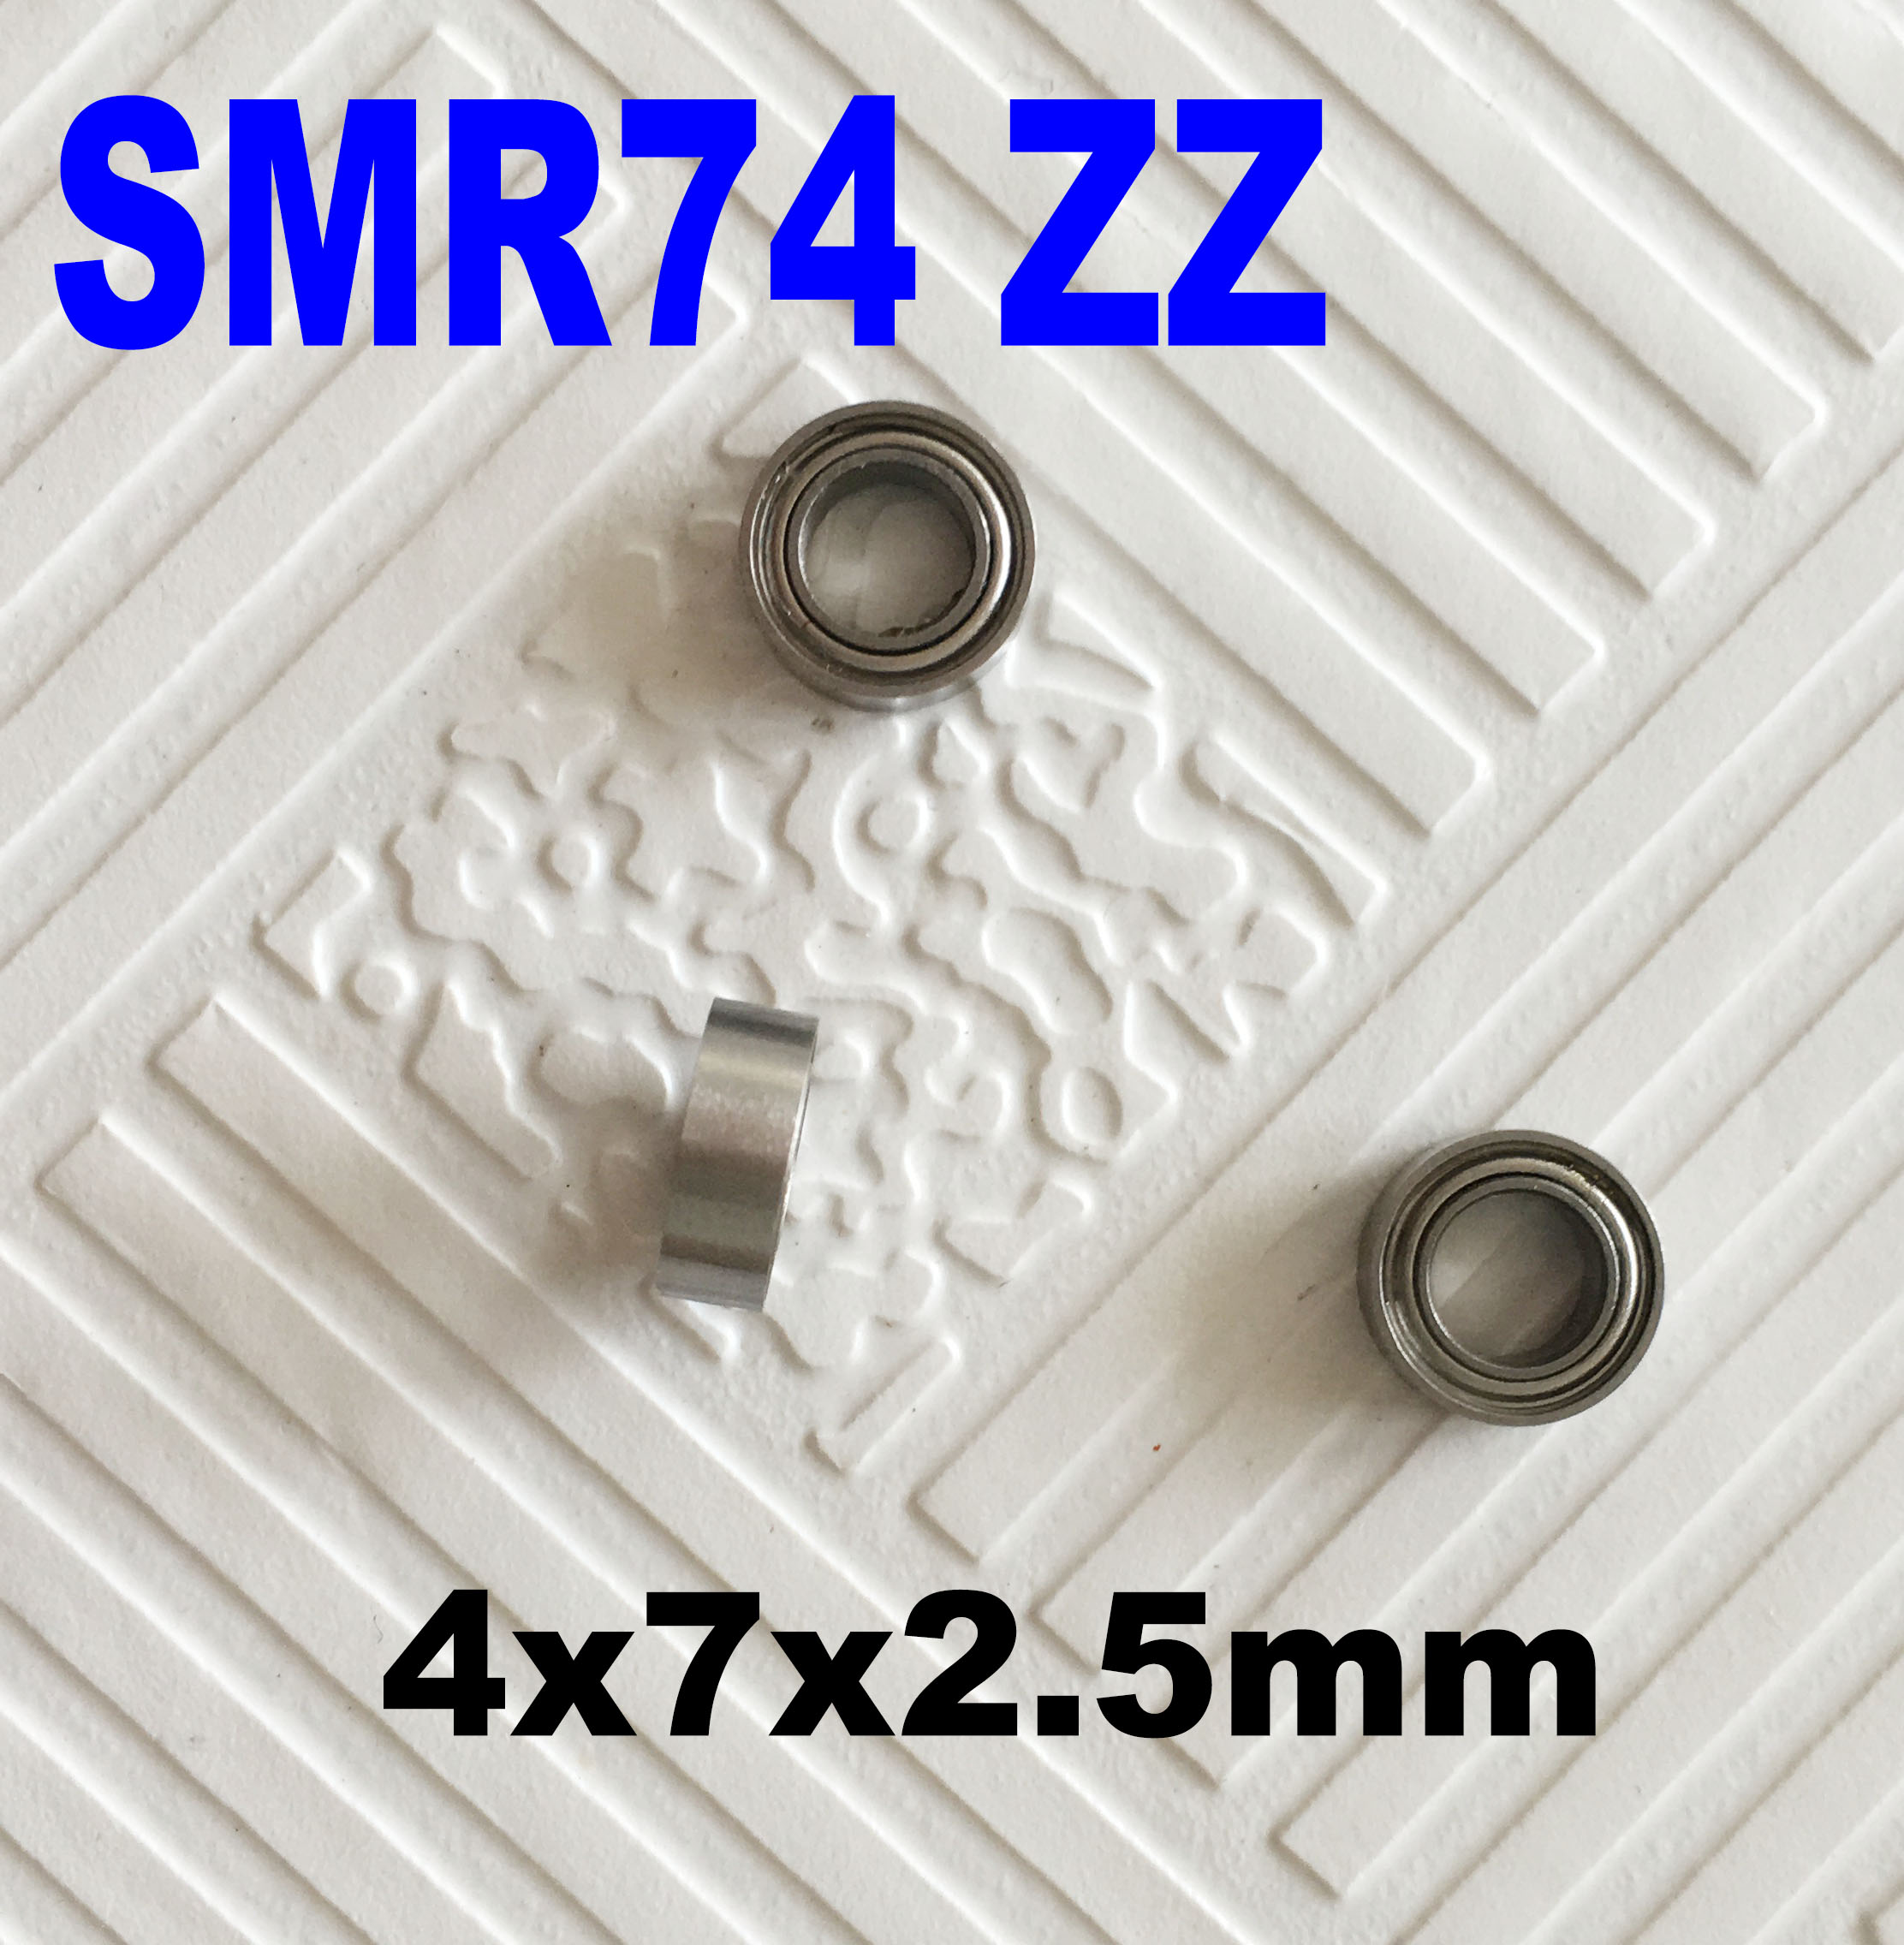 Free shipping 6 PCS SMR74ZZ Bearing 4x7x2.5 Stainless Steel Shielded Miniature Ball Bearings DDL-740ZZ S674ZZ B674ZZ WA674ZZ free shipping s6811 zz stainless steel shielded miniature ball bearings s6811zz size 55 72 9mm